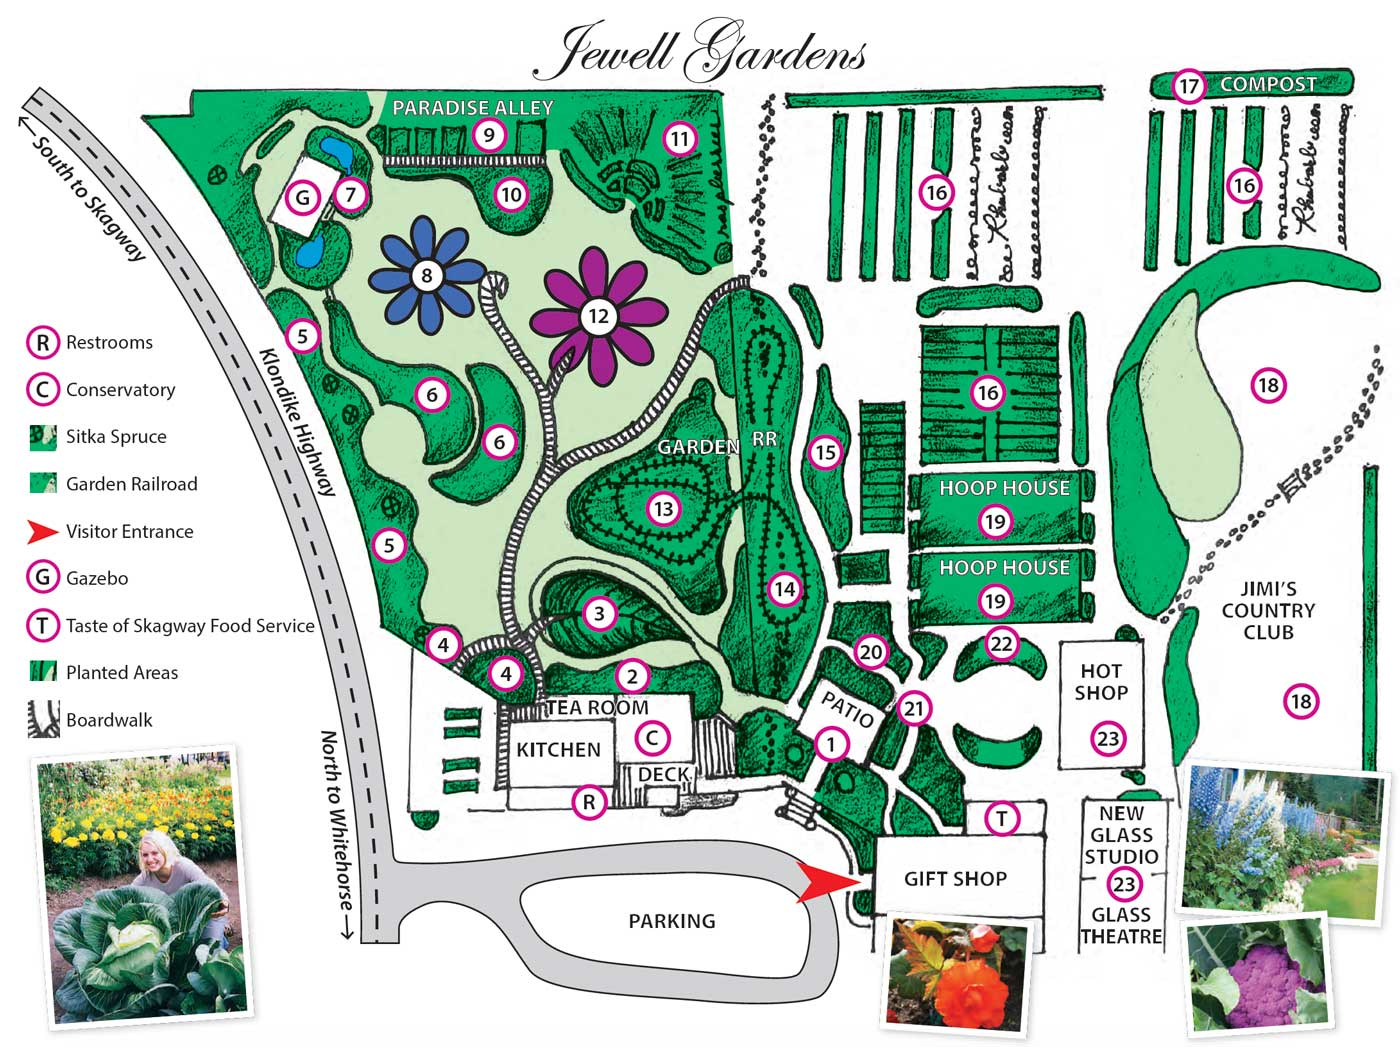 map of jewell gardens